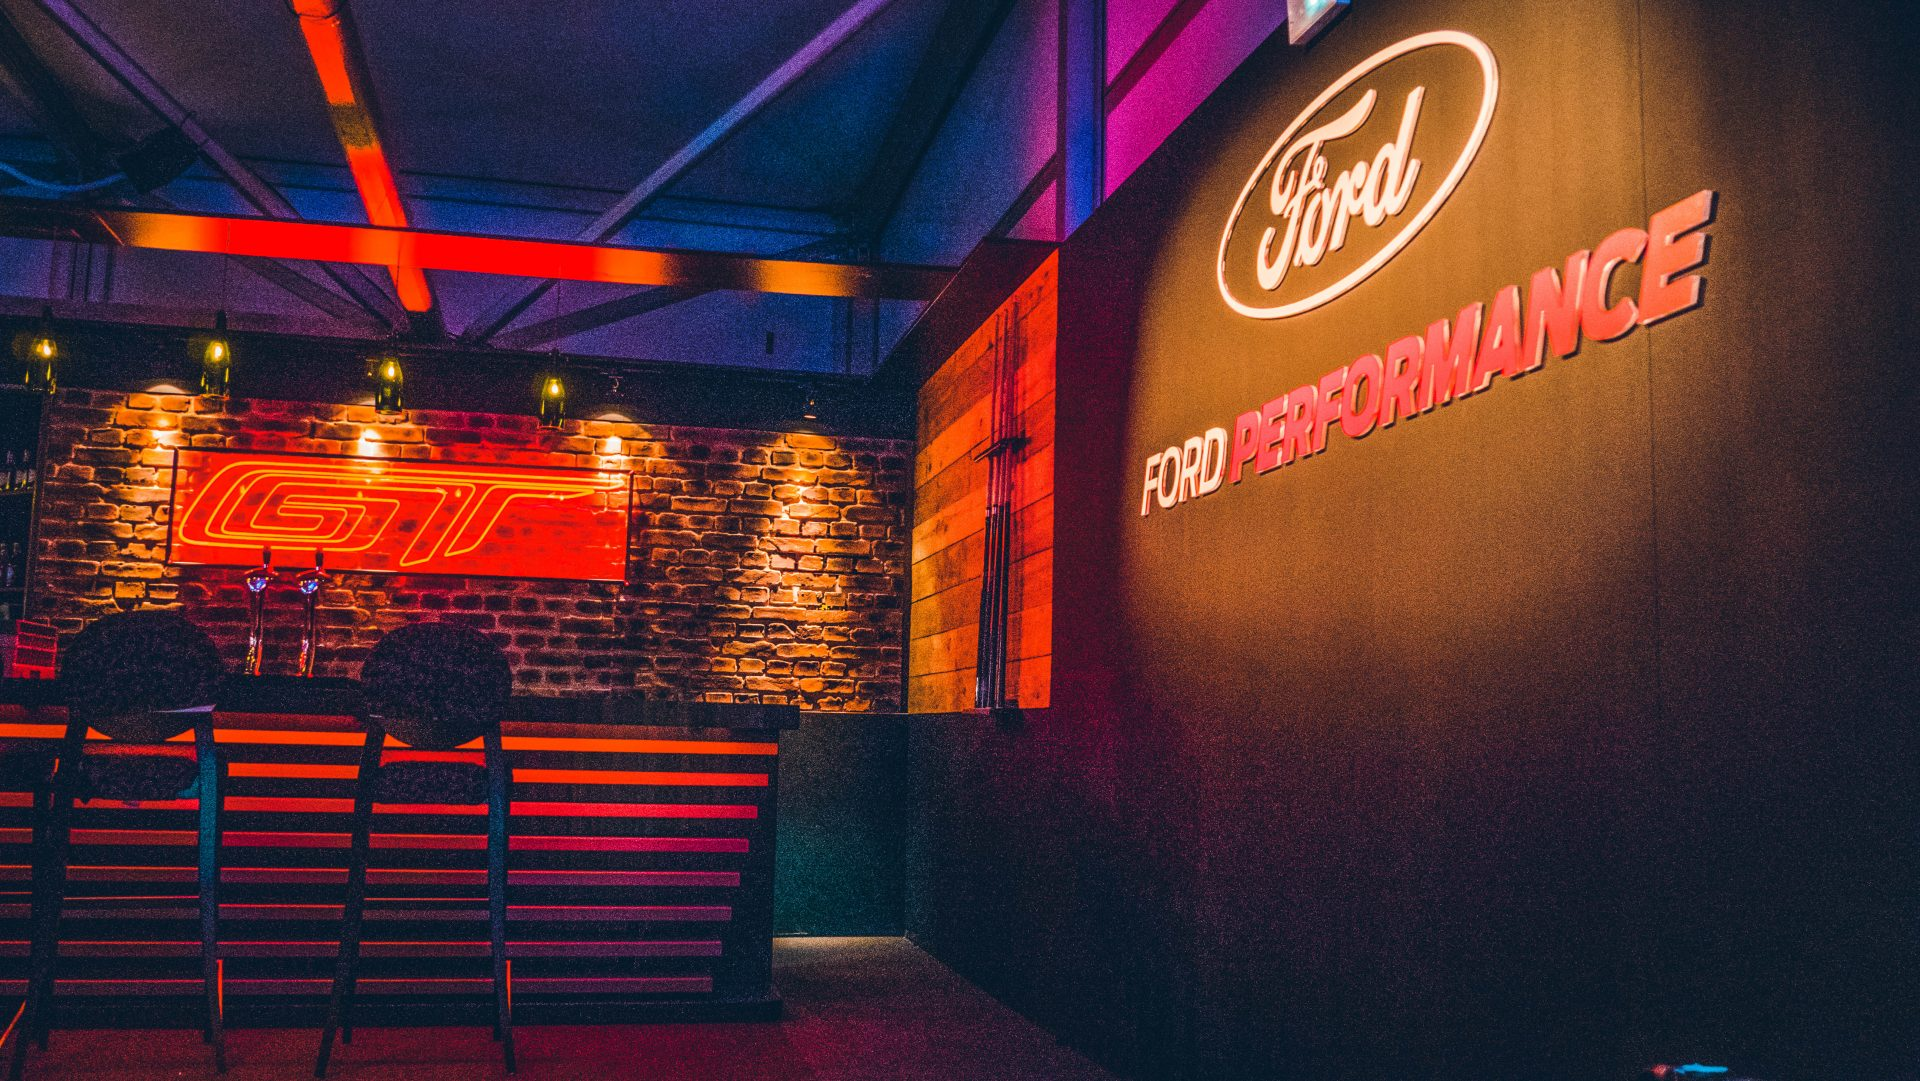 Ford (7) - 24h 2017 - iEvent